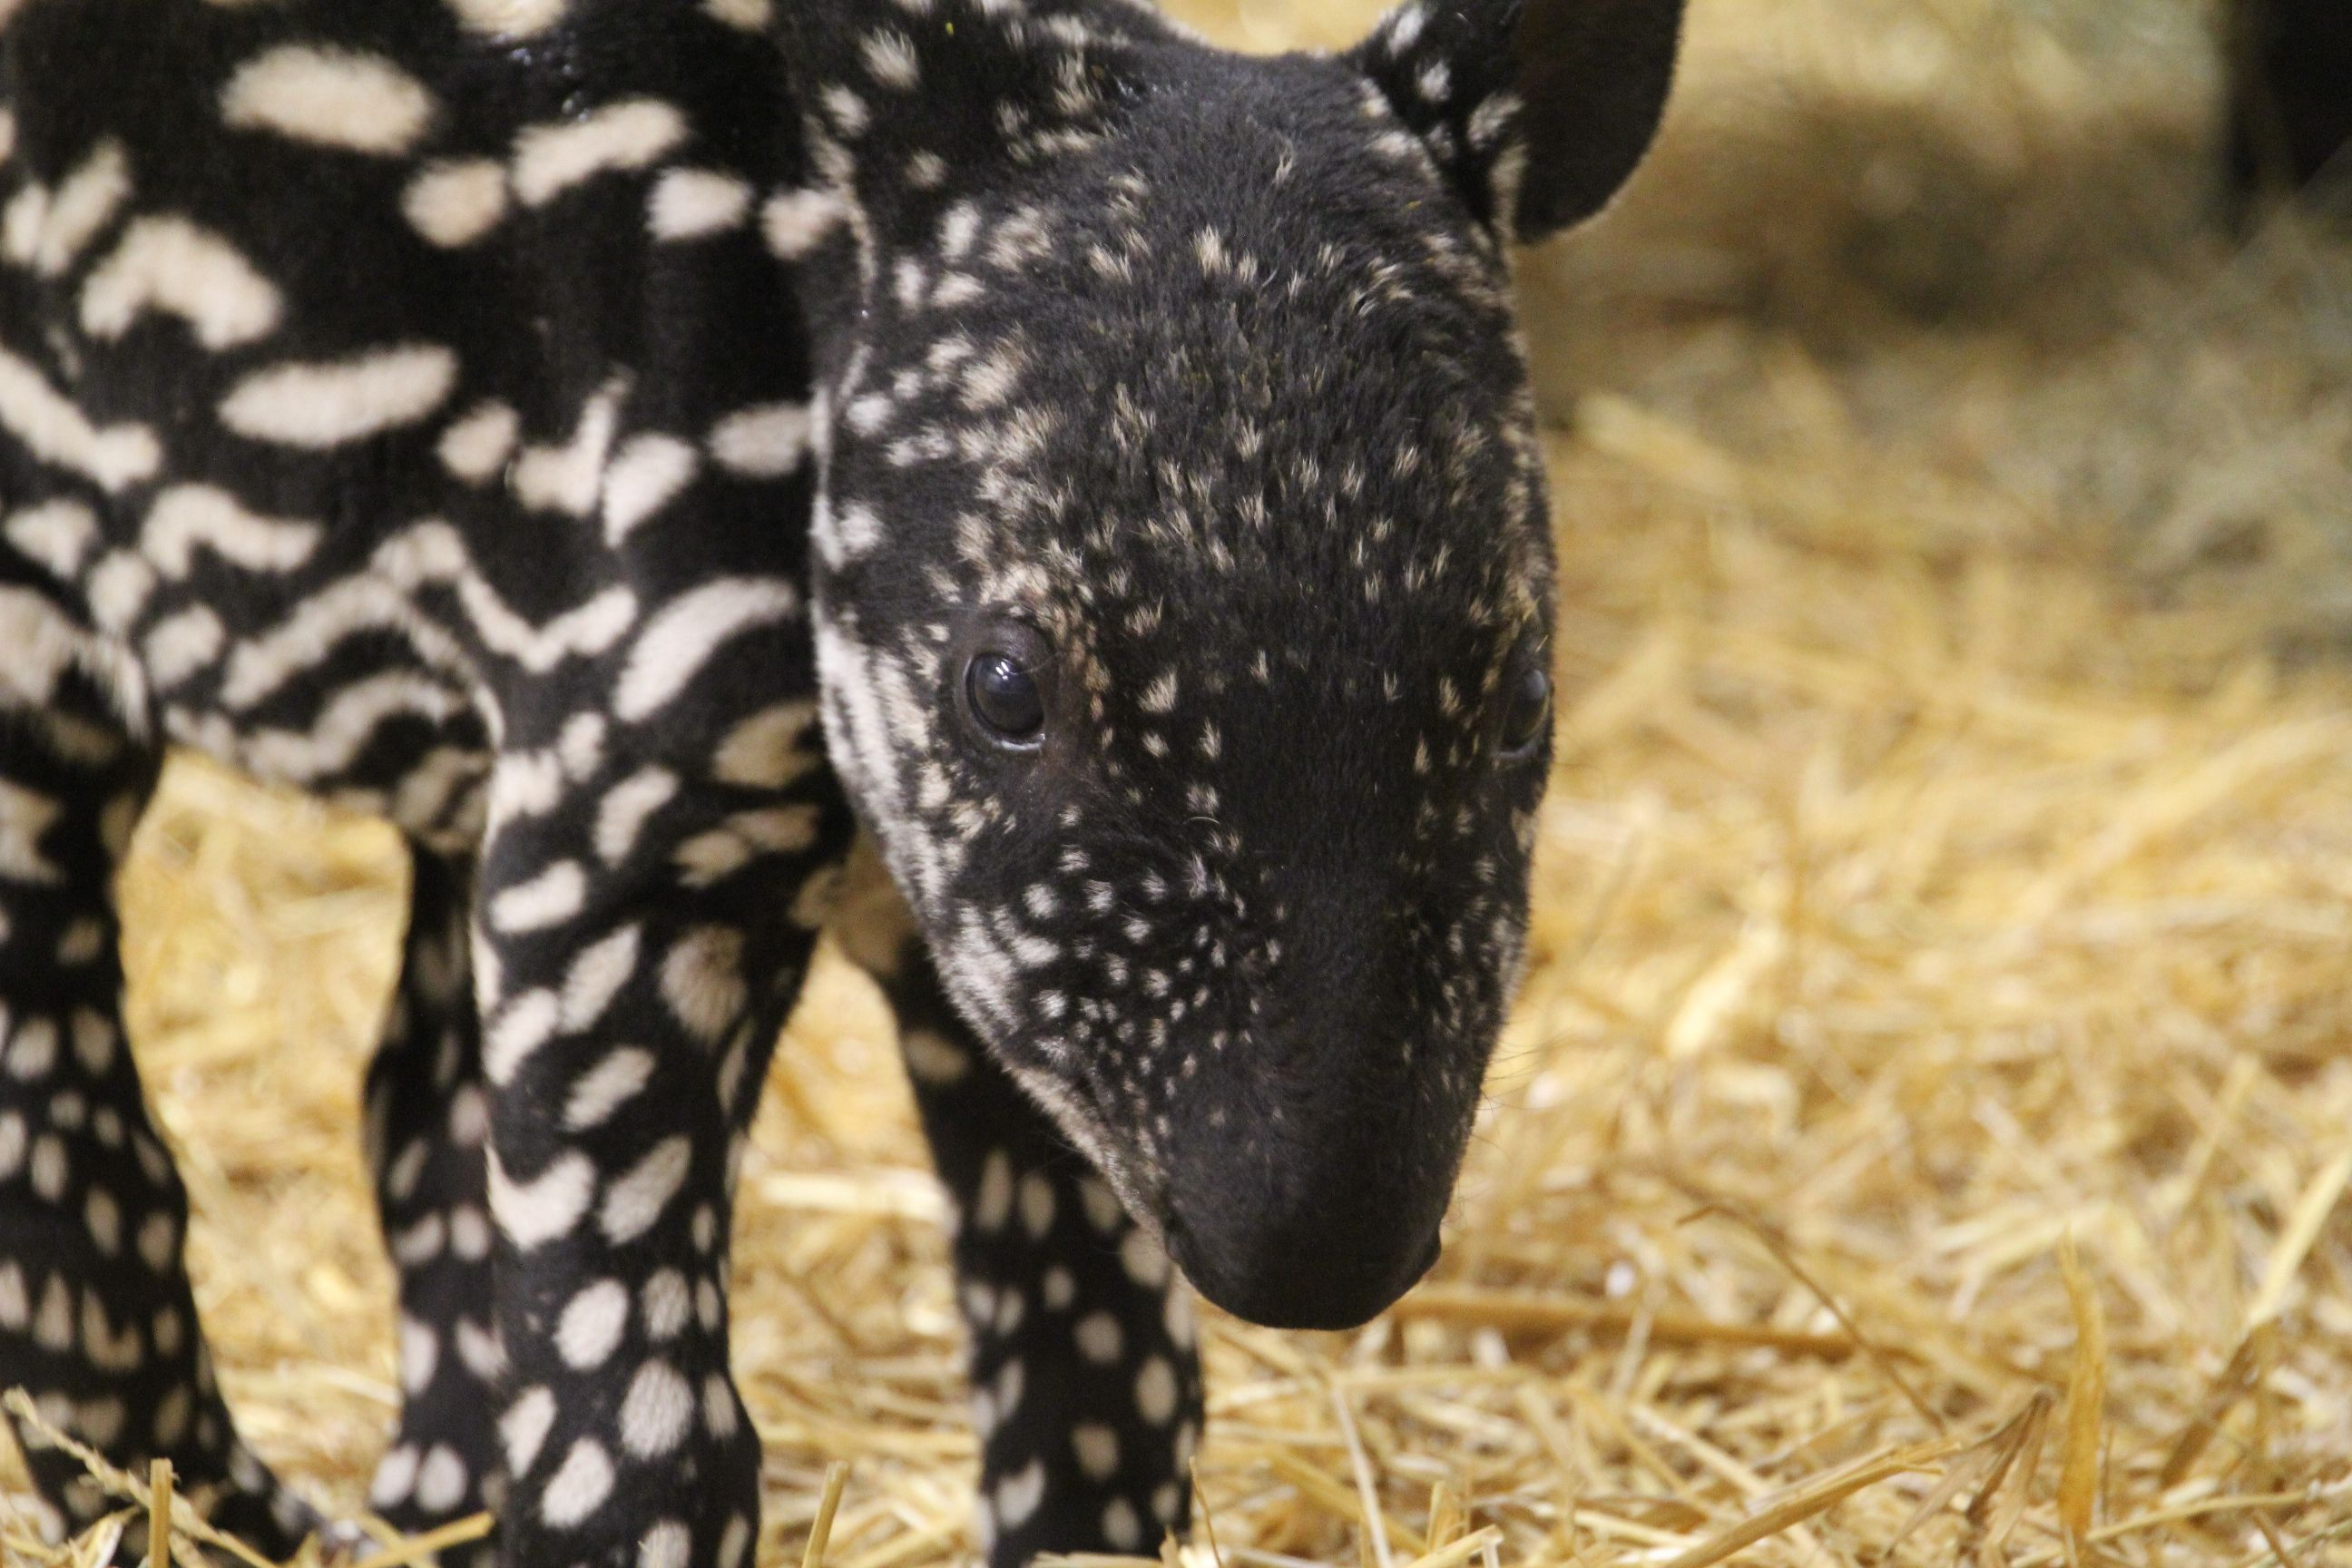 The Malayan tapir is one of the most endangered animals in